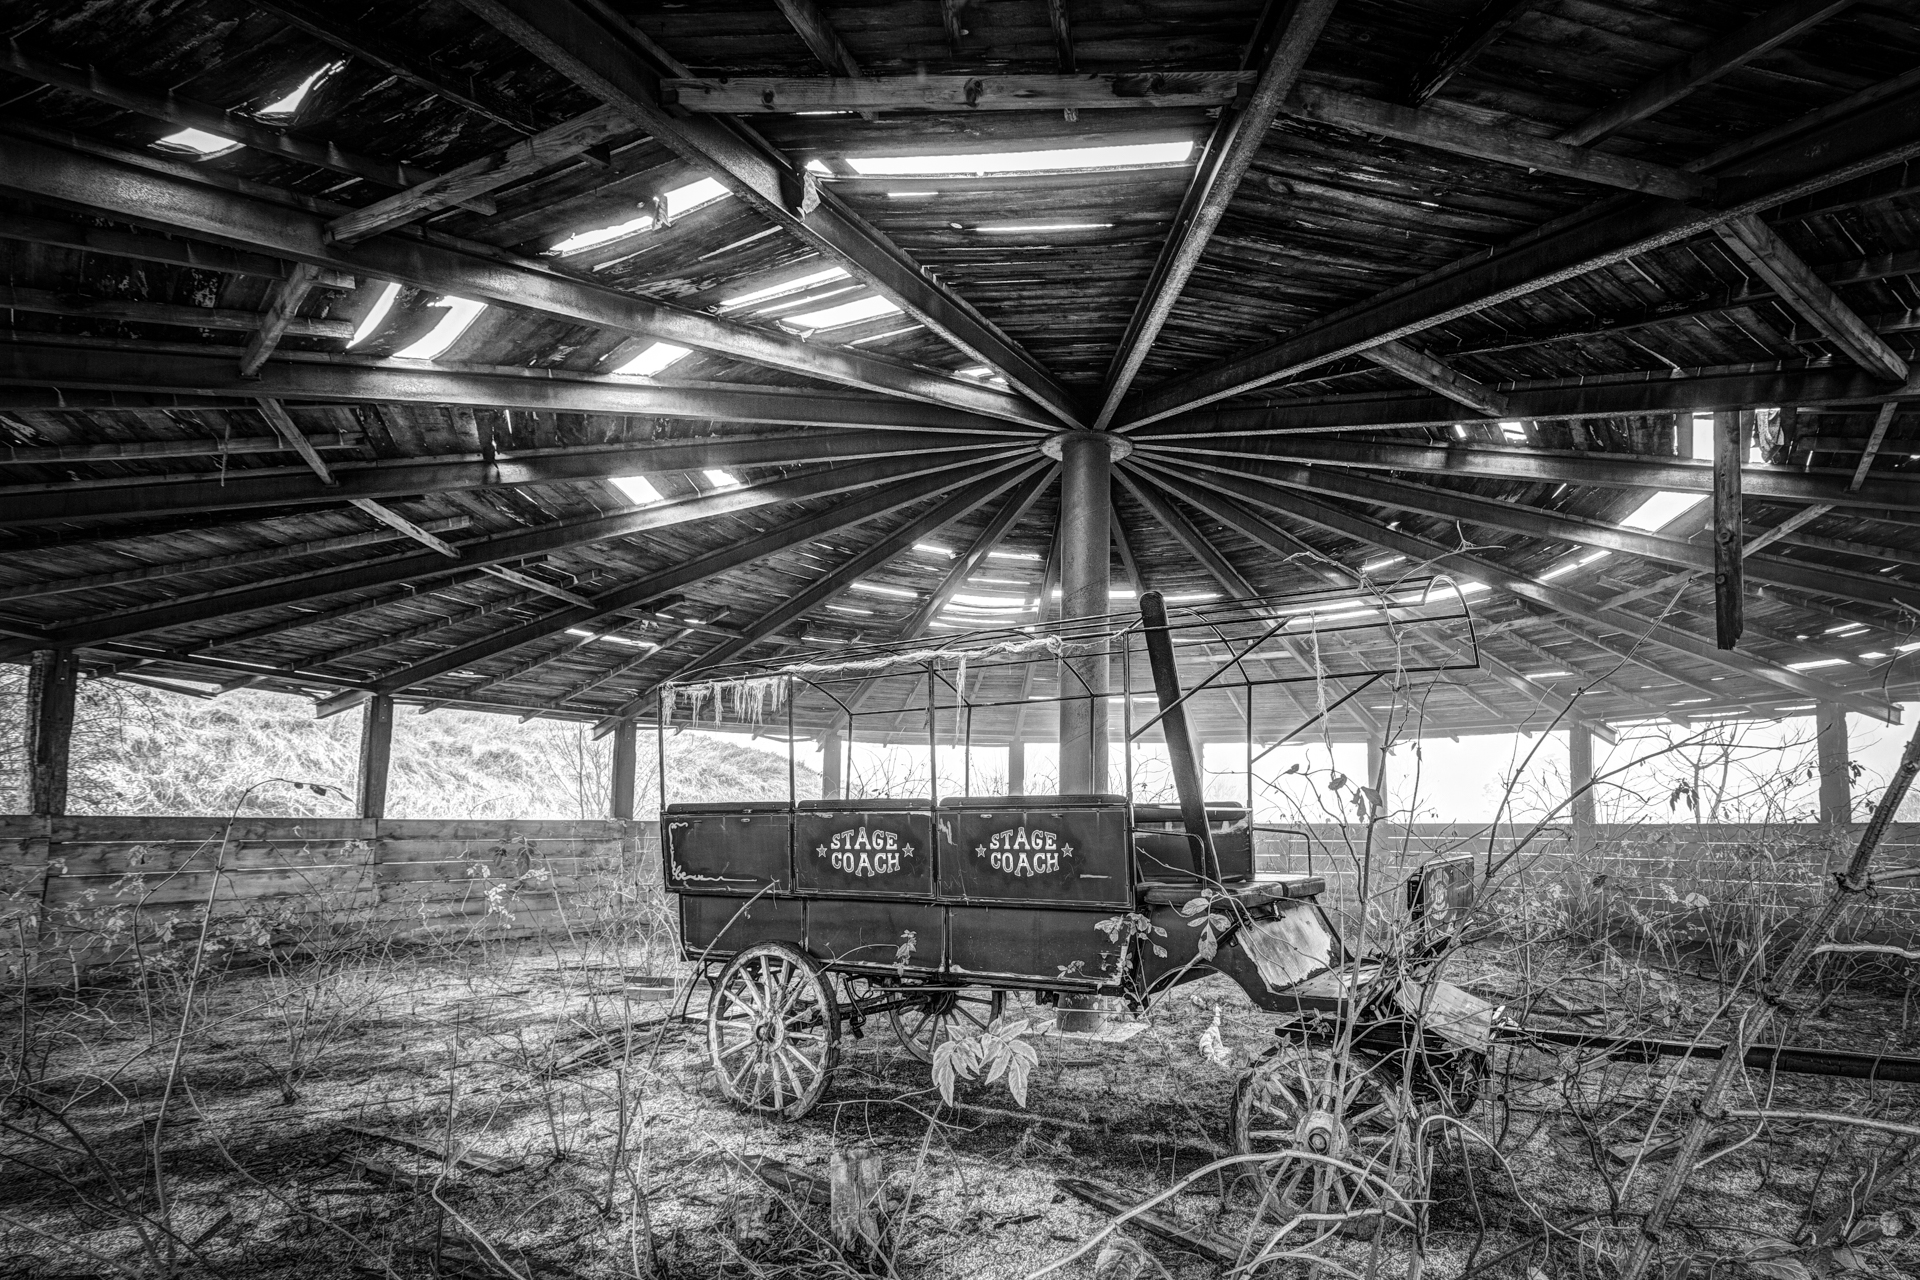 Urbex - Wayne City - Horseless Carriage